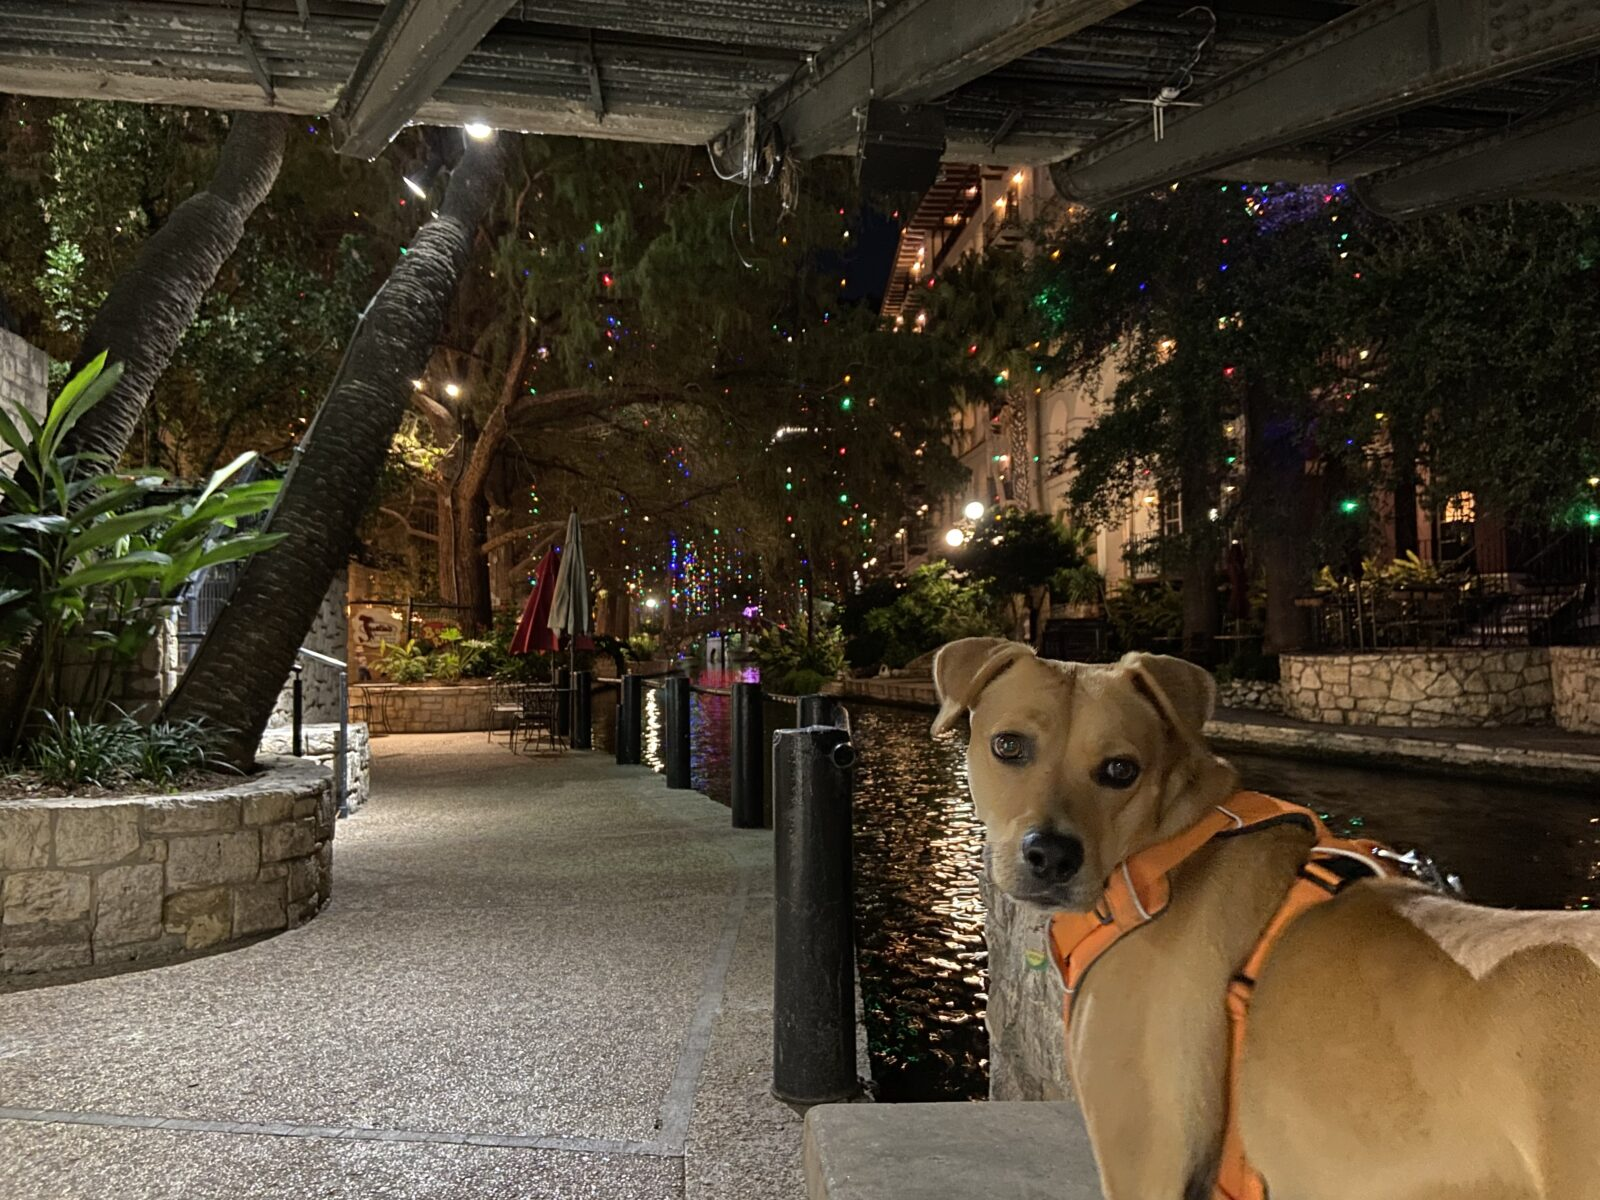 Our favorite time to take our dog for a walk on the San Antonio Riverwalk is during Christmastime.